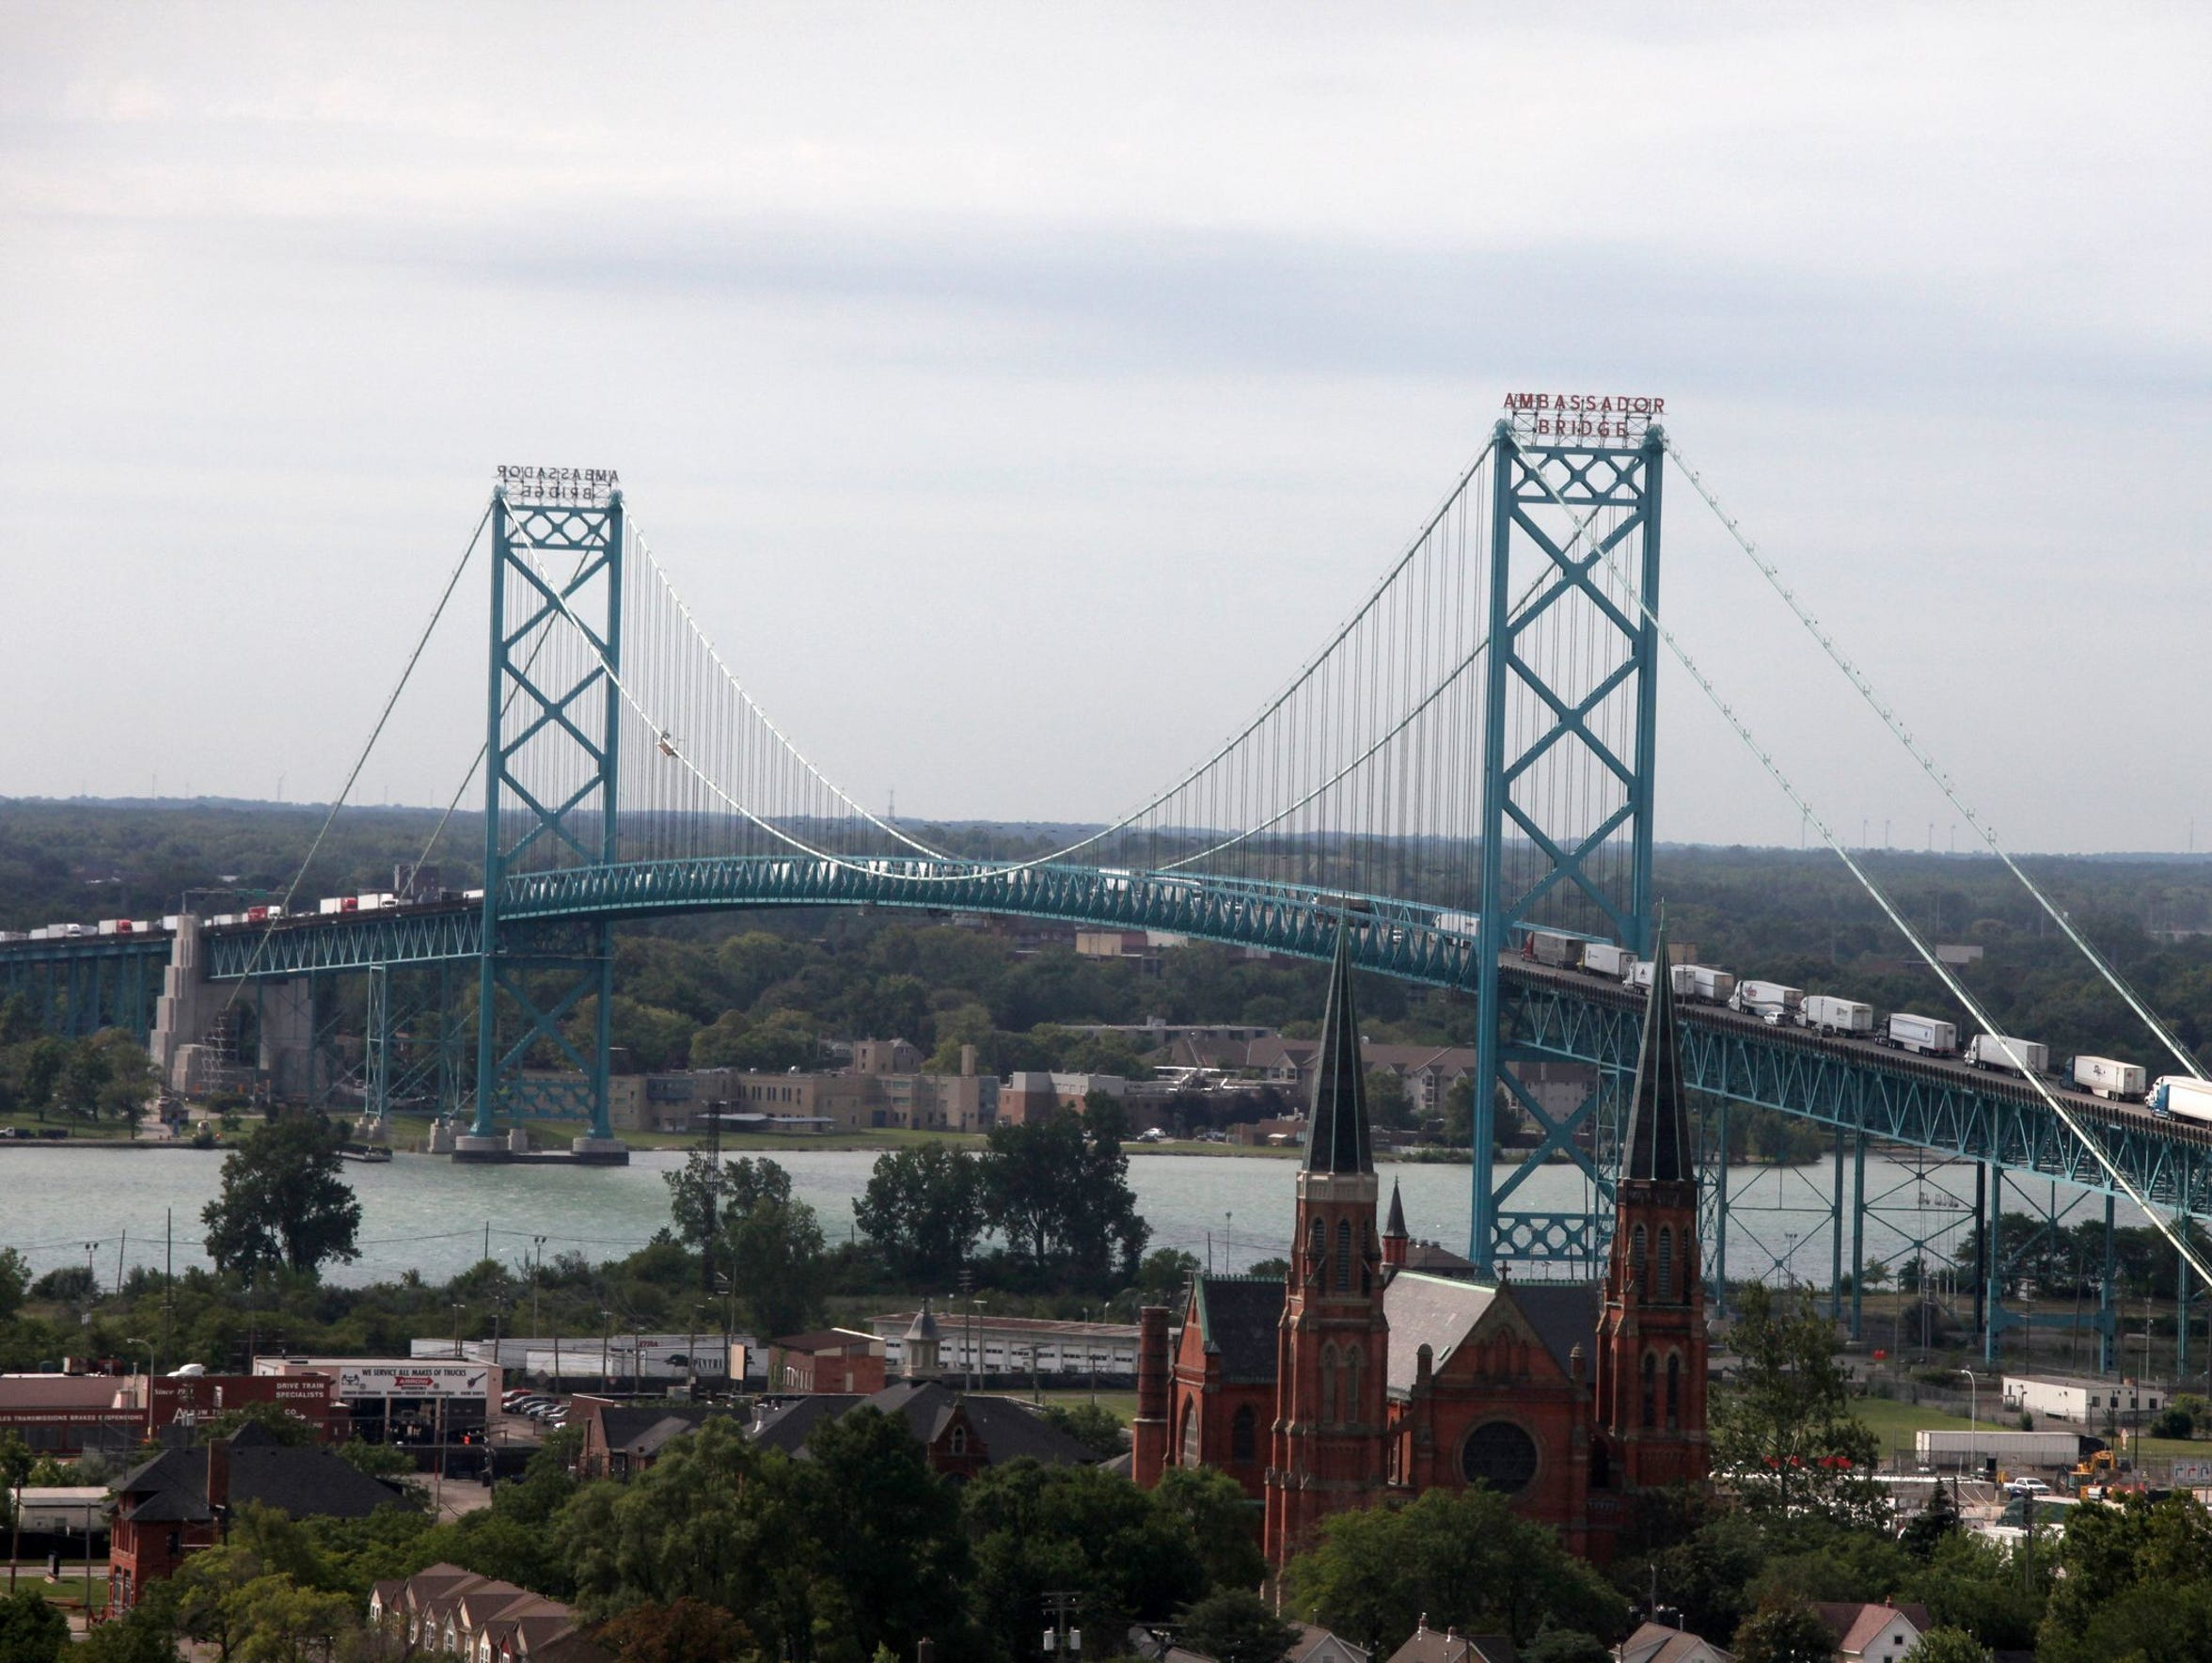 The Ambassador Bridge is one of the busiest border crossings in North America. The bridge is the most important economic link between the U.S. and Canada, taking in an estimated $60 million in tolls alone, with more than $500 million in trade crossing daily.